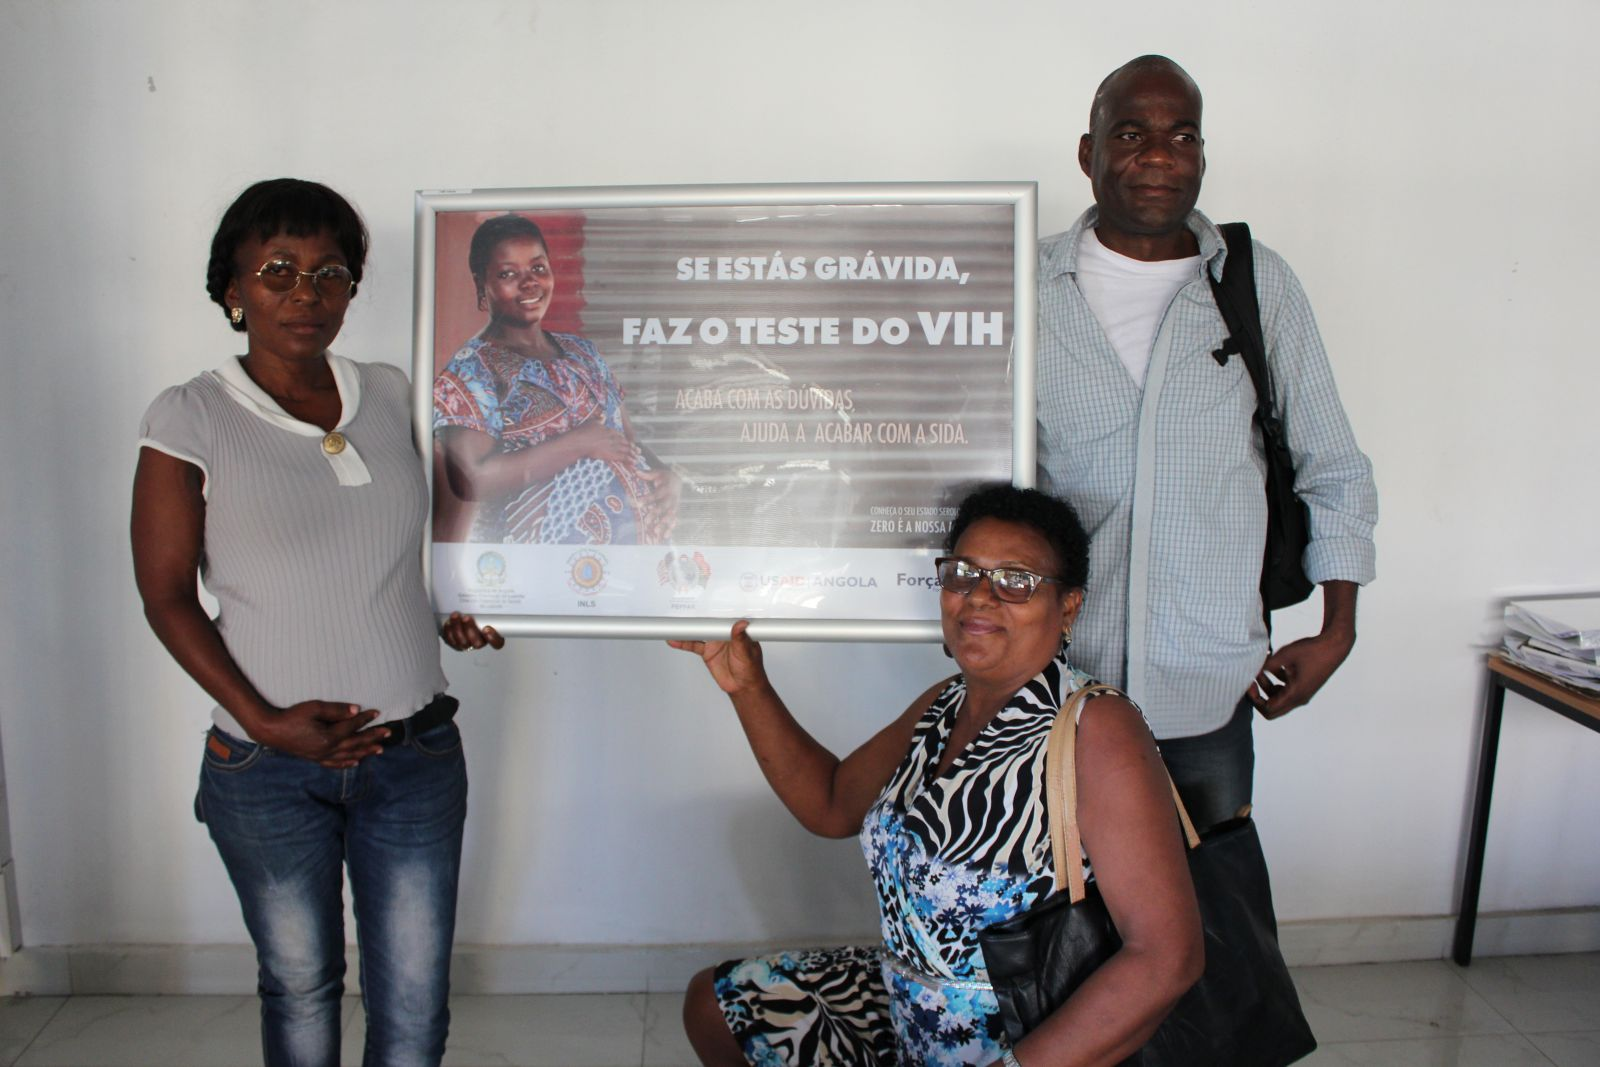 HIV activists Elizabeth Fernandes (kneeling), Francisco Pinto and Suzeth de Morais are helping Angolans with the virus get the treatment and care they need to lead healthier lives.